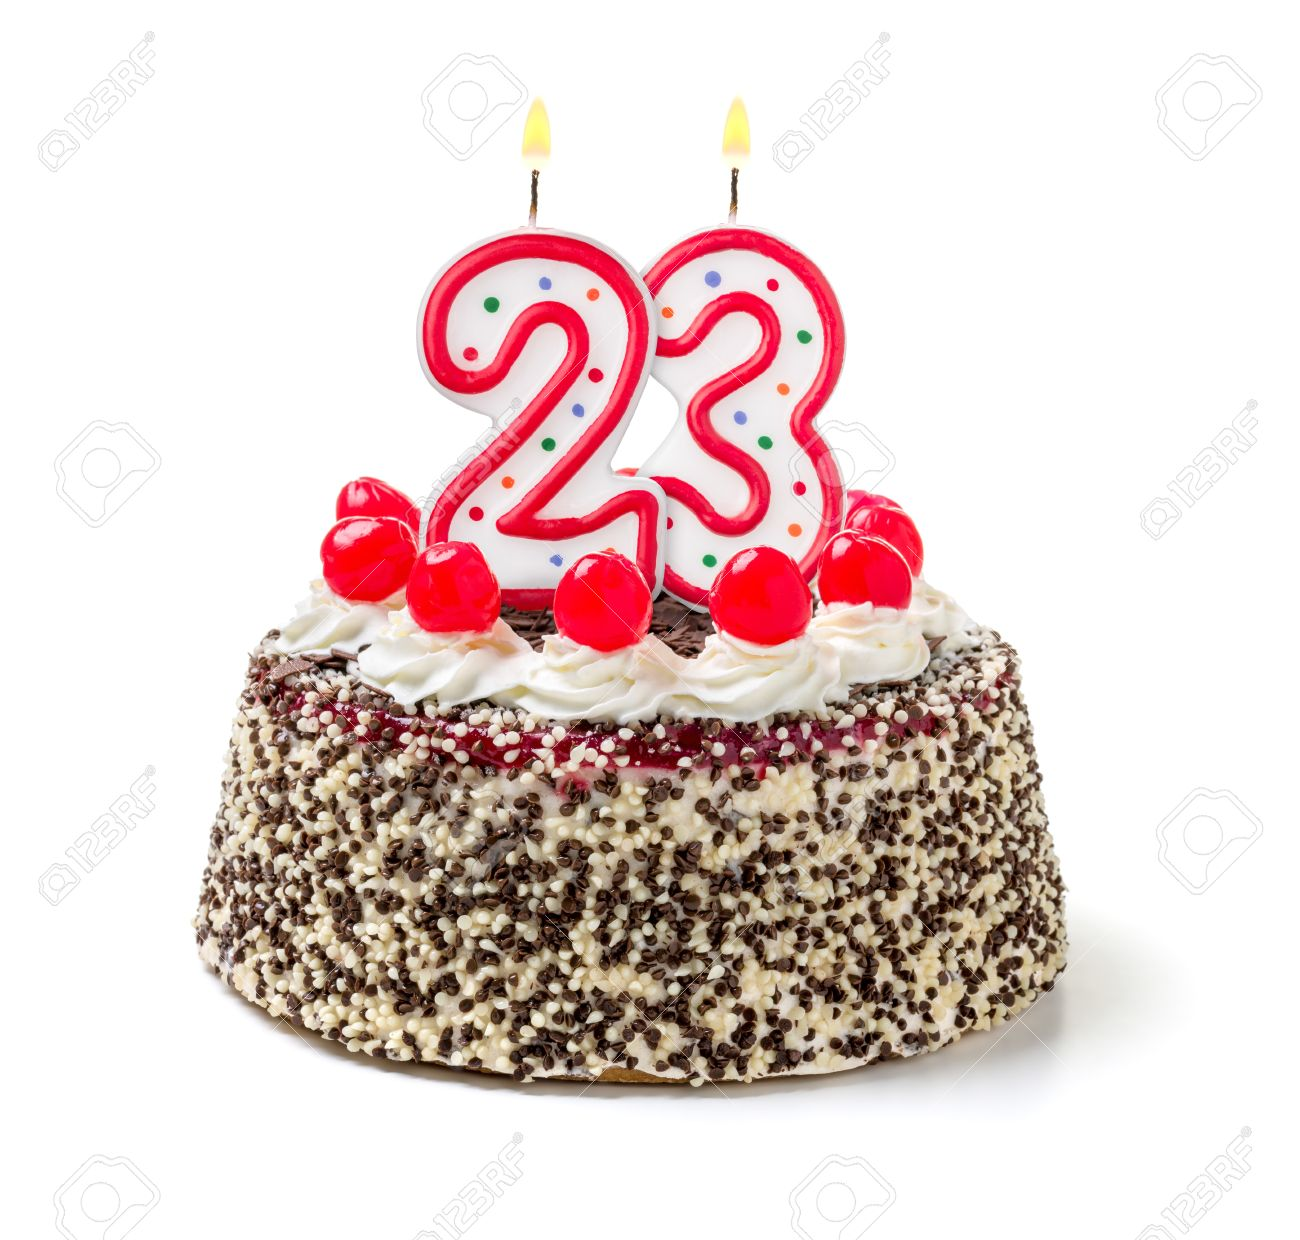 Birthday Cake With Burning Candle Number 23 Stock Photo